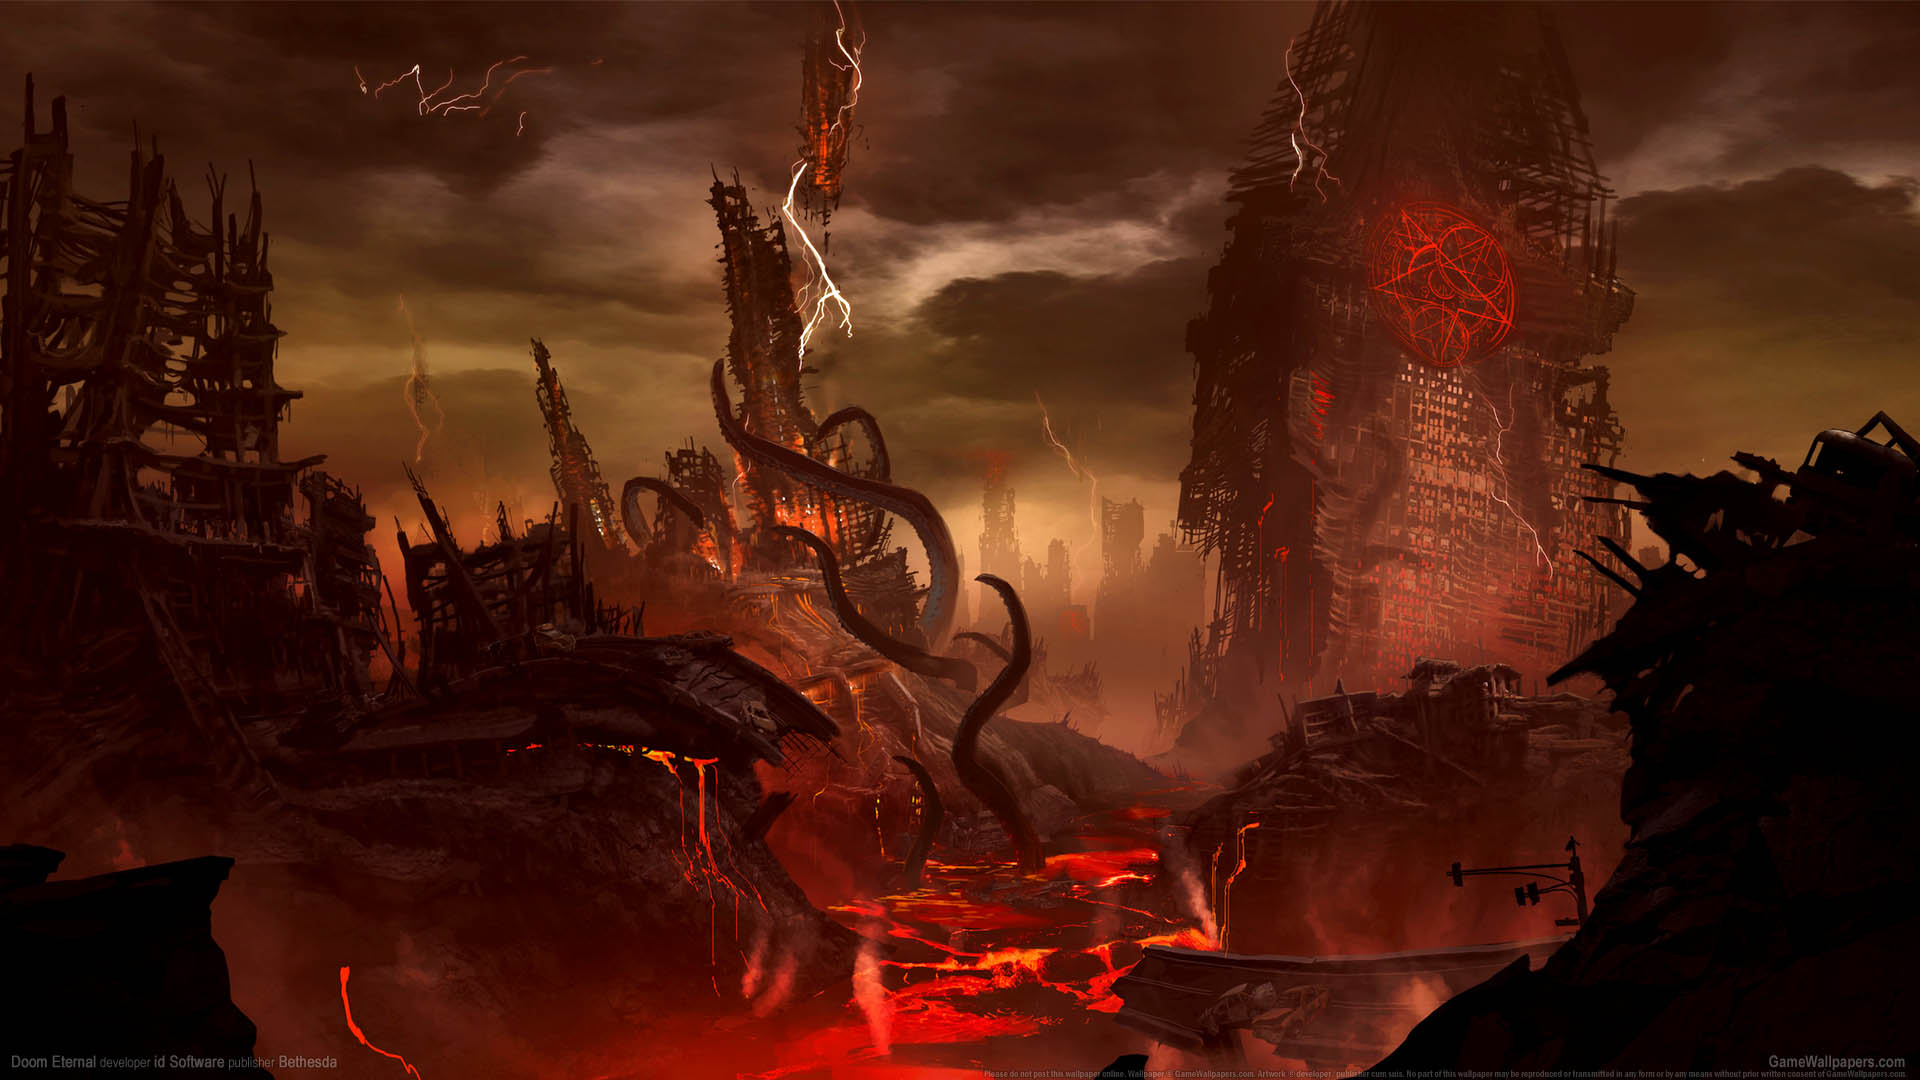 Doom Eternal fondo de escritorio 01 1920x1080